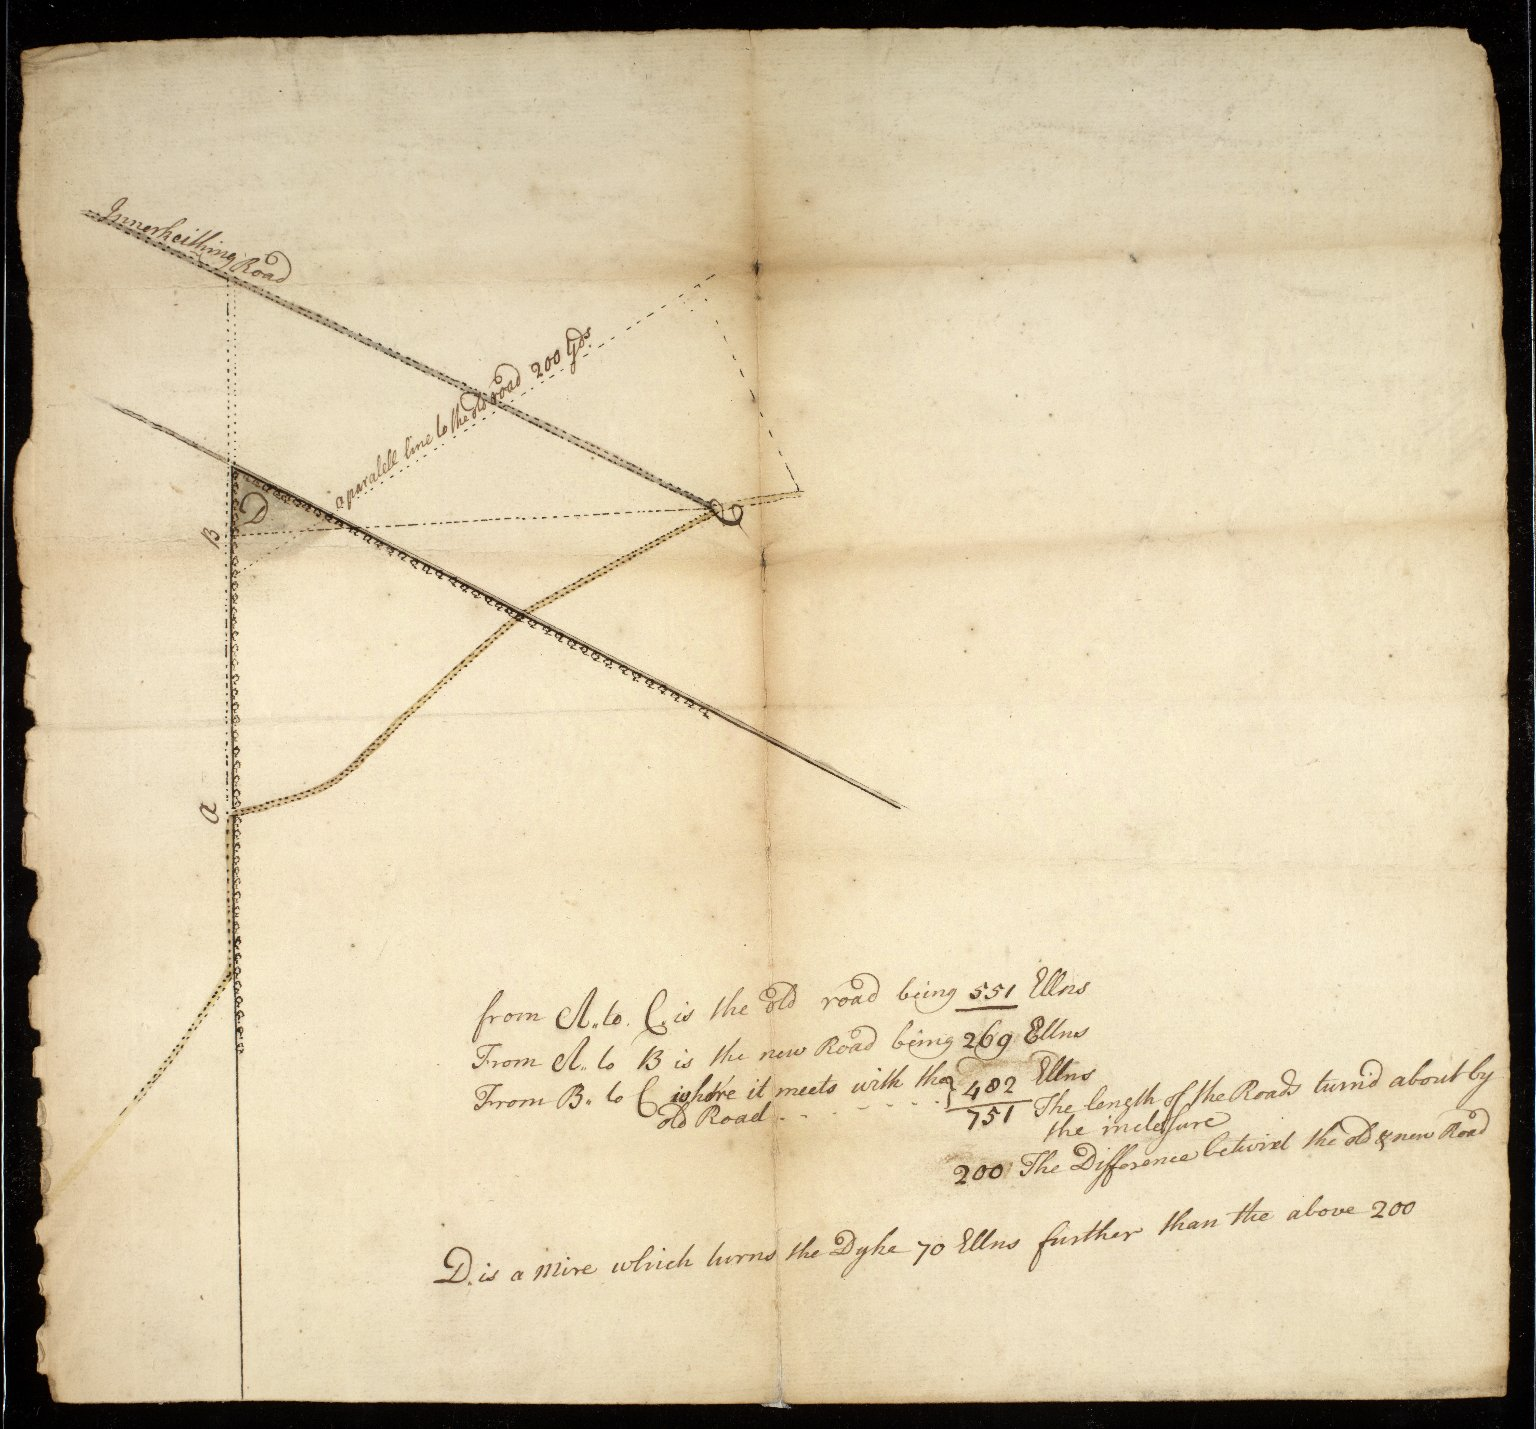 [Sketch plan of the roads of Inverkeithing] [1 of 2]